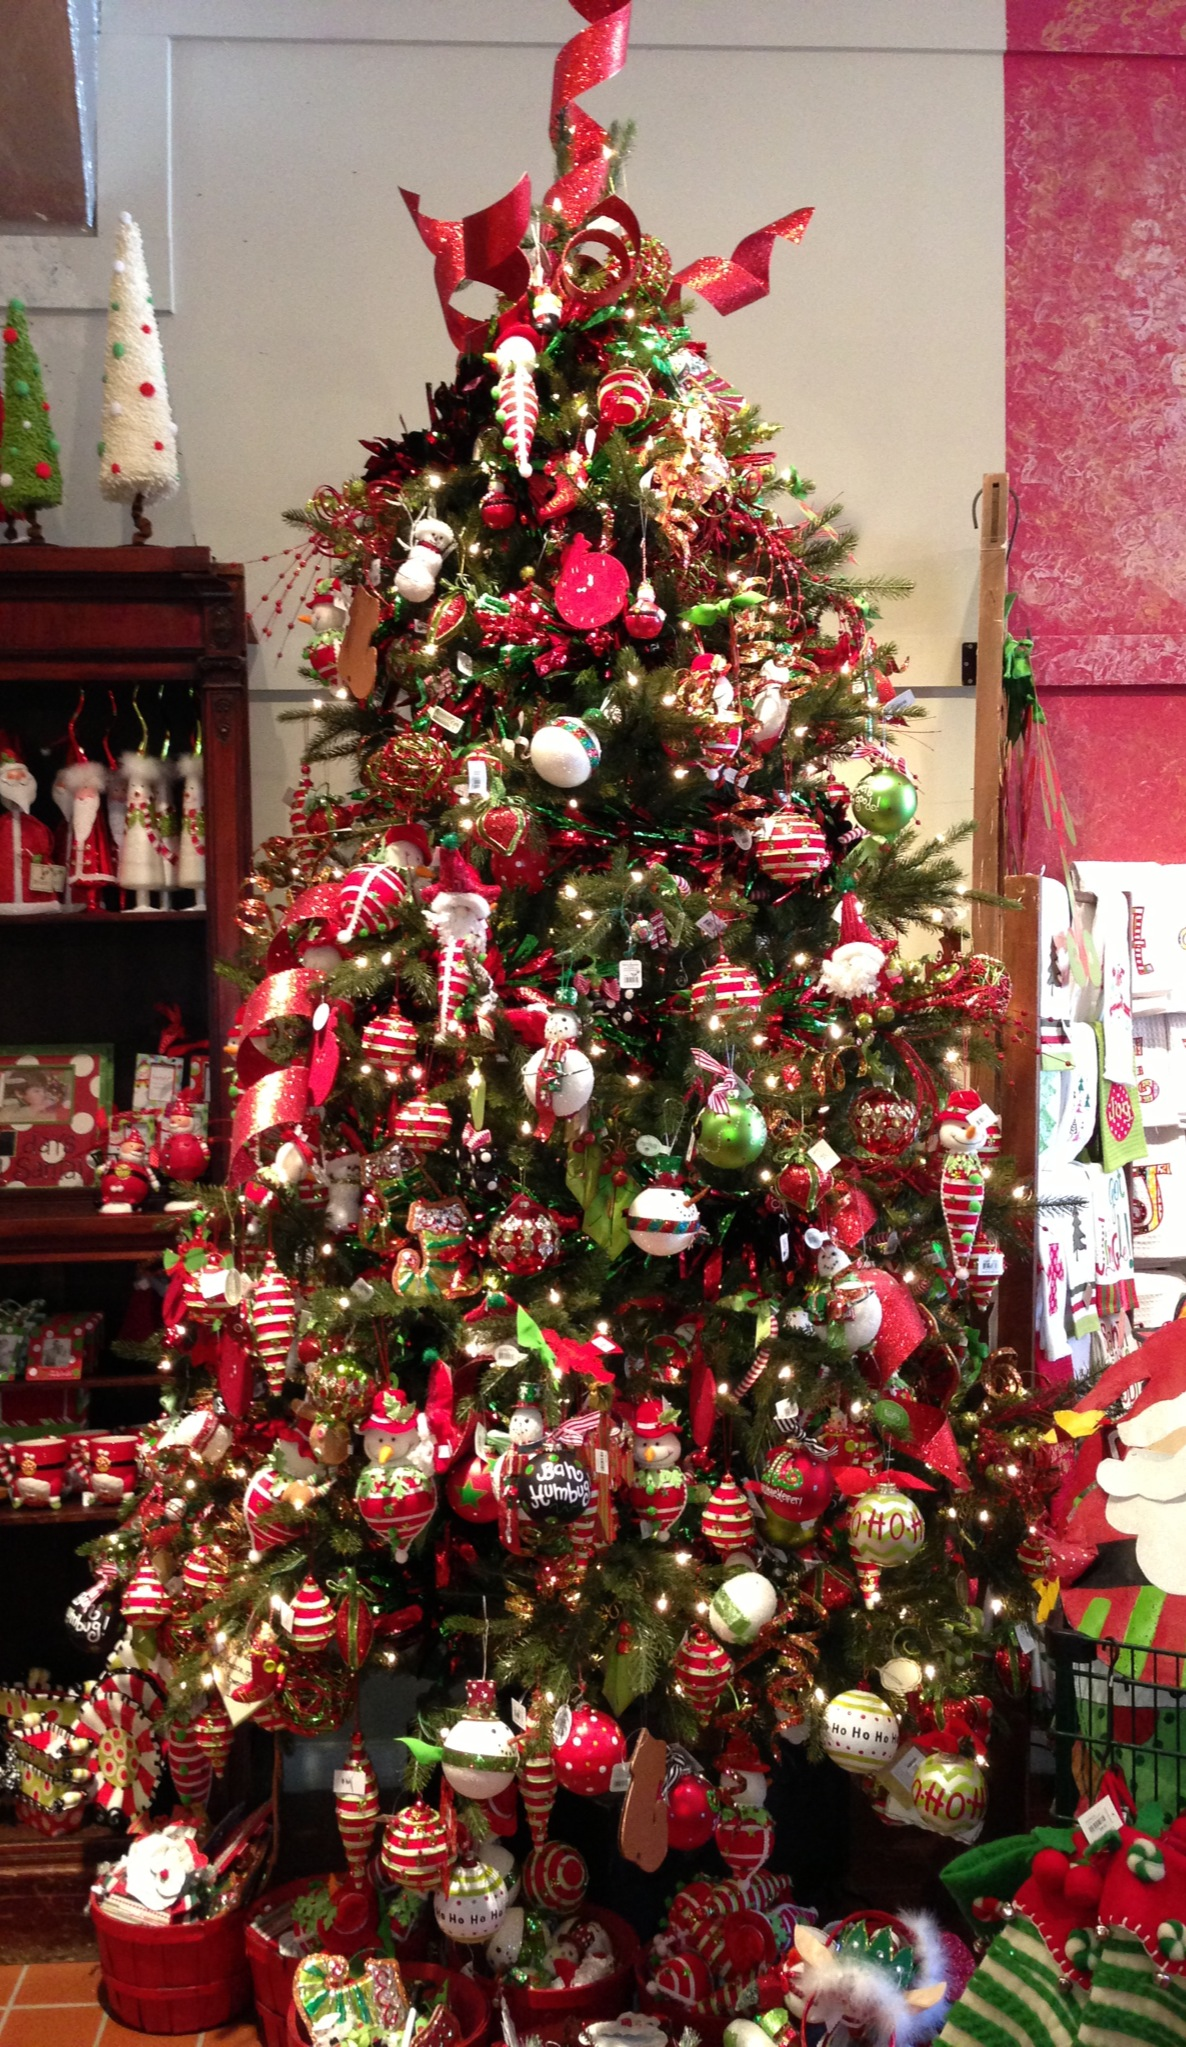 decorated christmas trees - photo #13